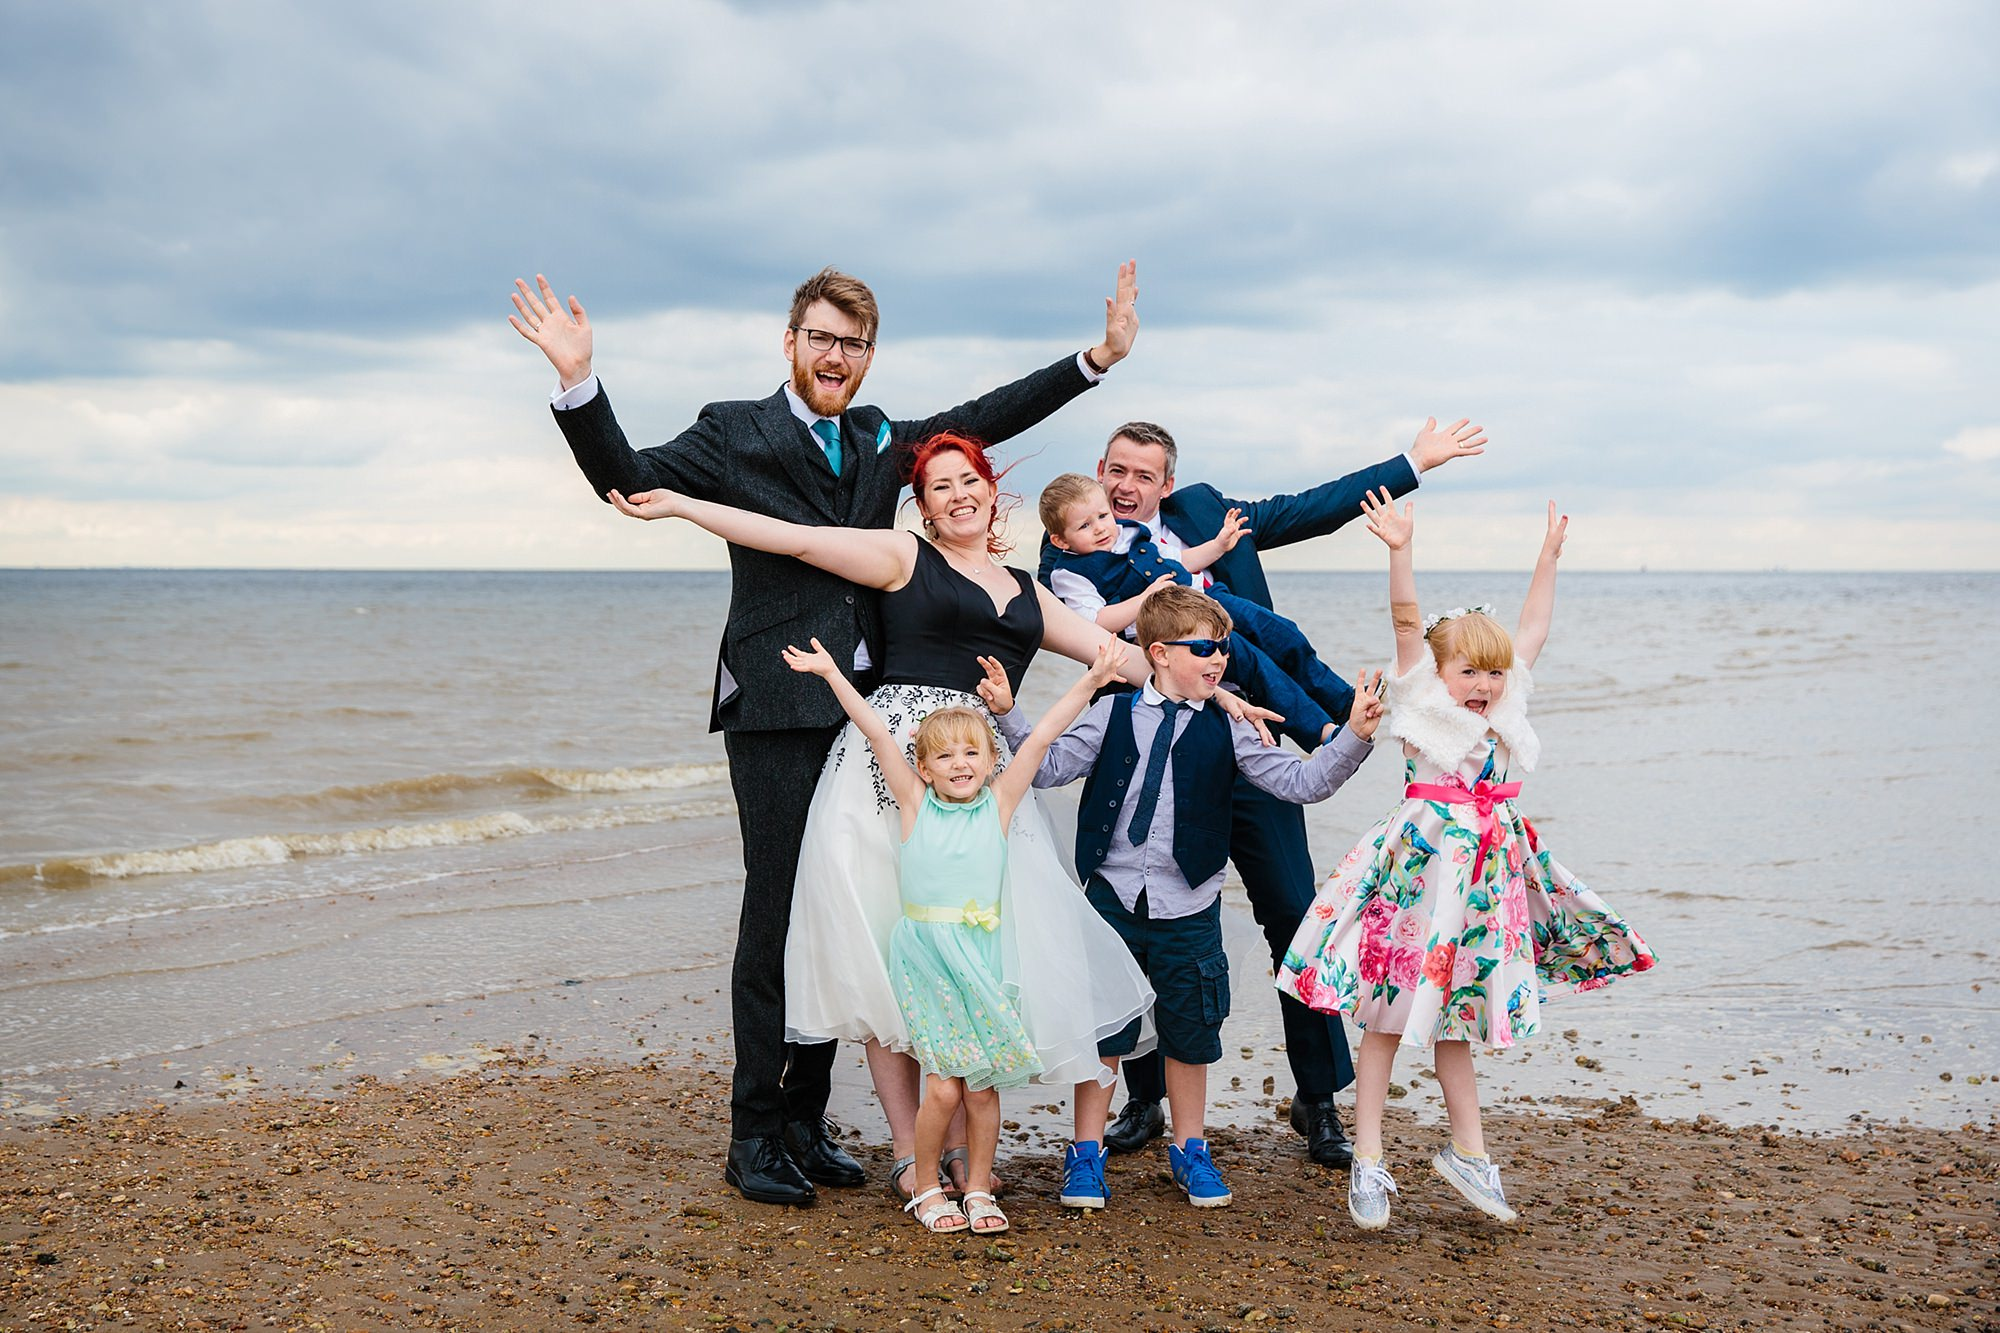 Beacon House wedding fun family portrait on the beach